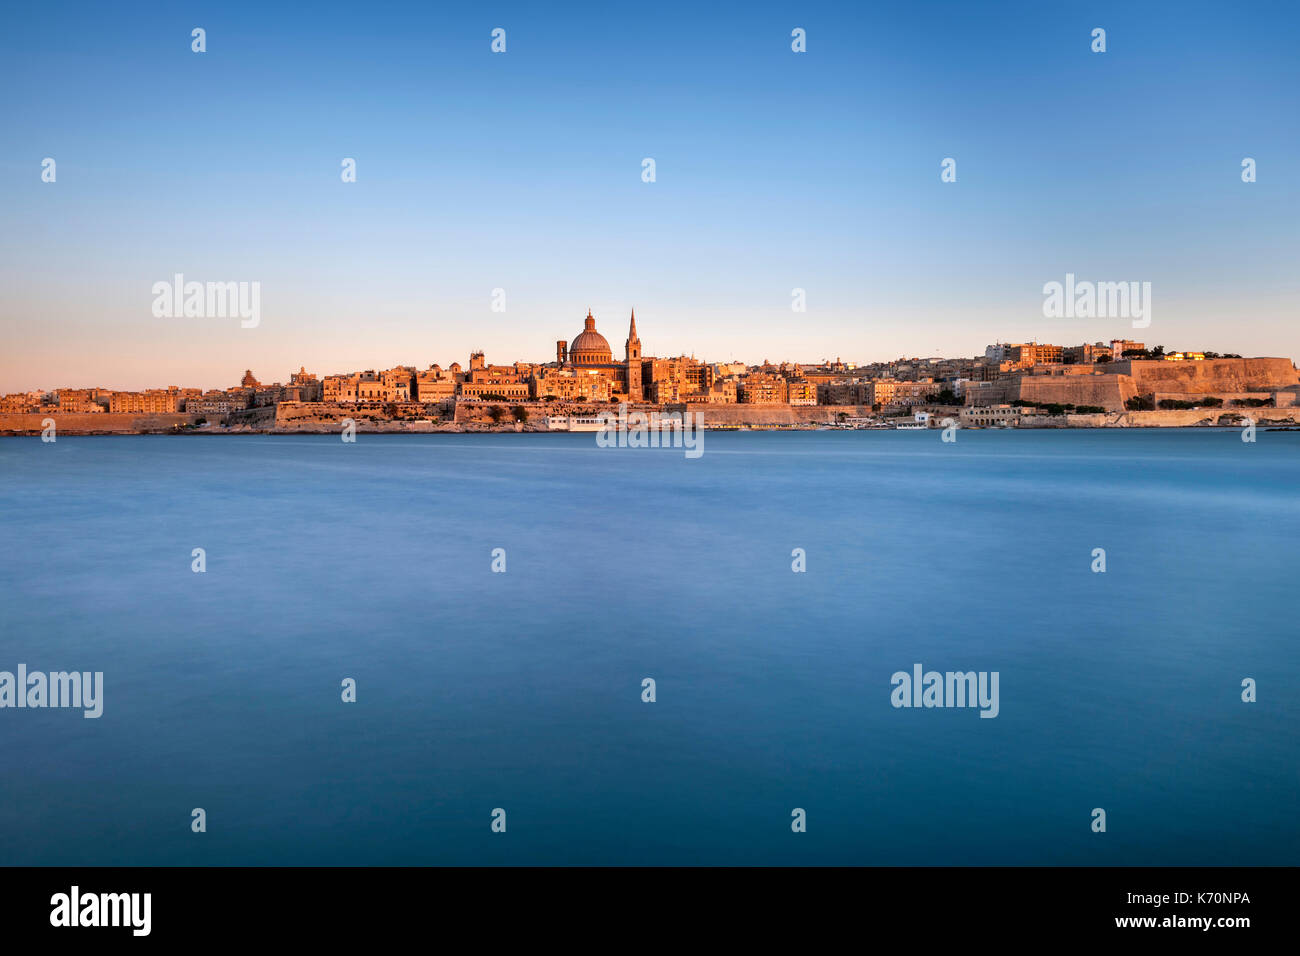 Dusk view of the old town of Valletta, the capital of Malta. - Stock Image